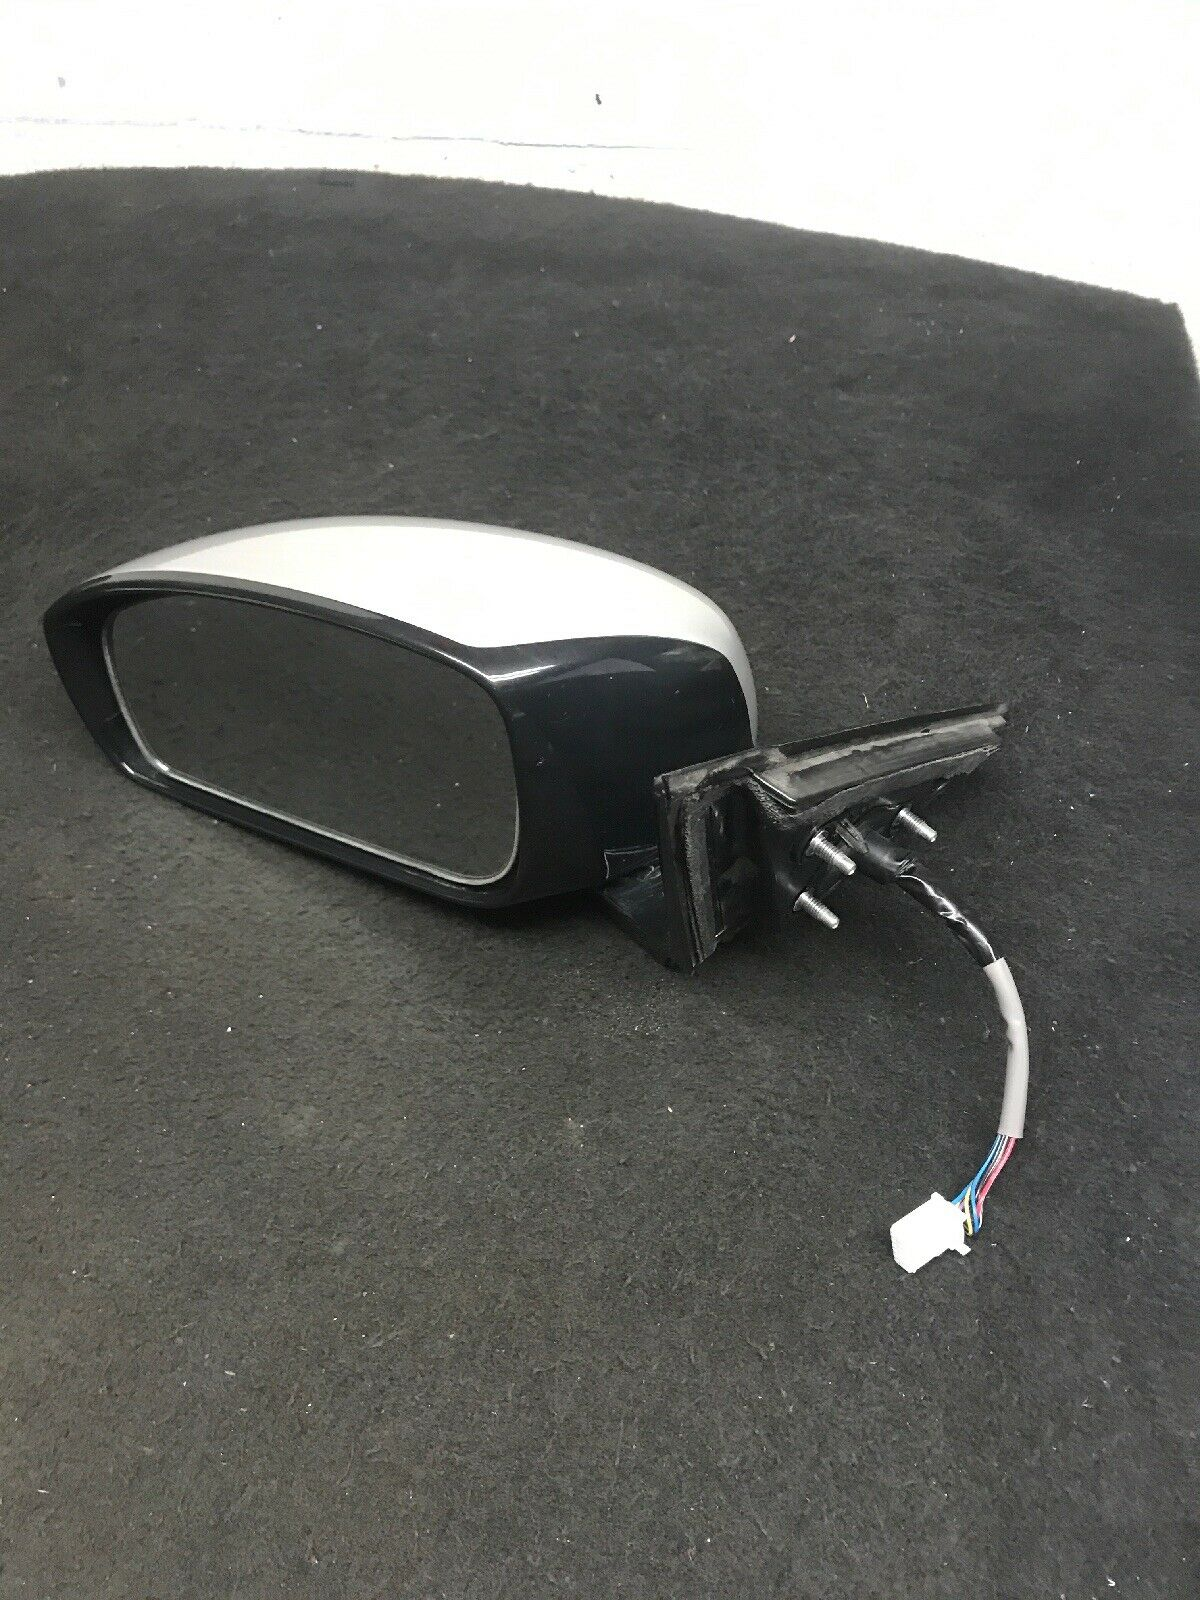 Infiniti G37 Mirror OEM Left Fits 2007-2008